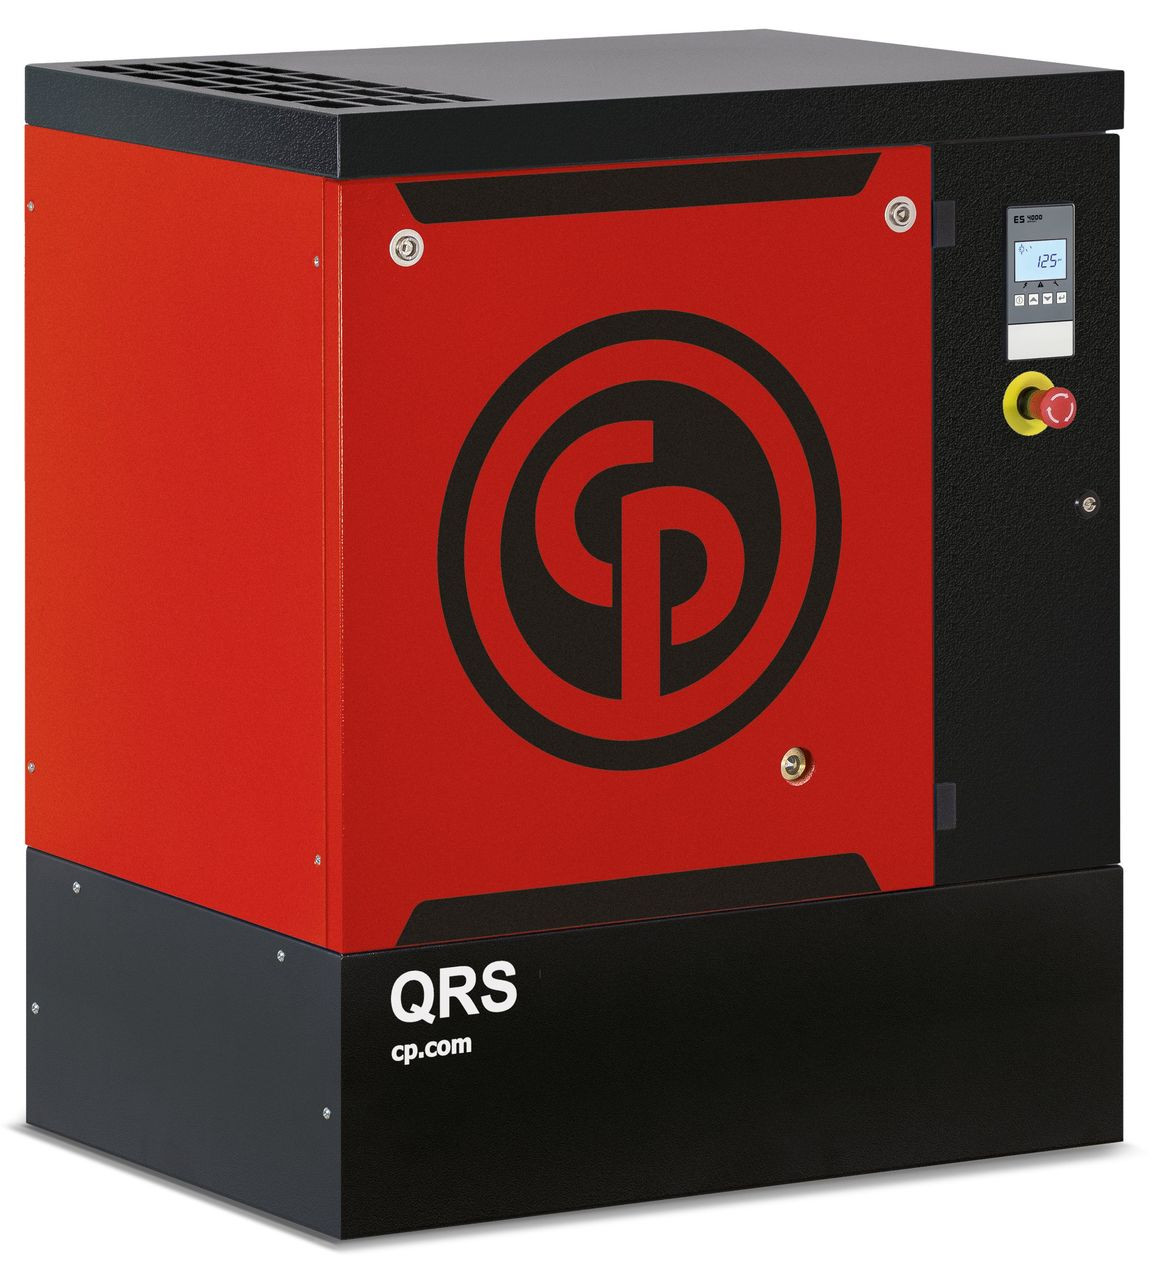 Chicago Pneumatic QRS15HP-150 BM 15 HP 150 psi Base Mount Rotary Screw Air Compressor